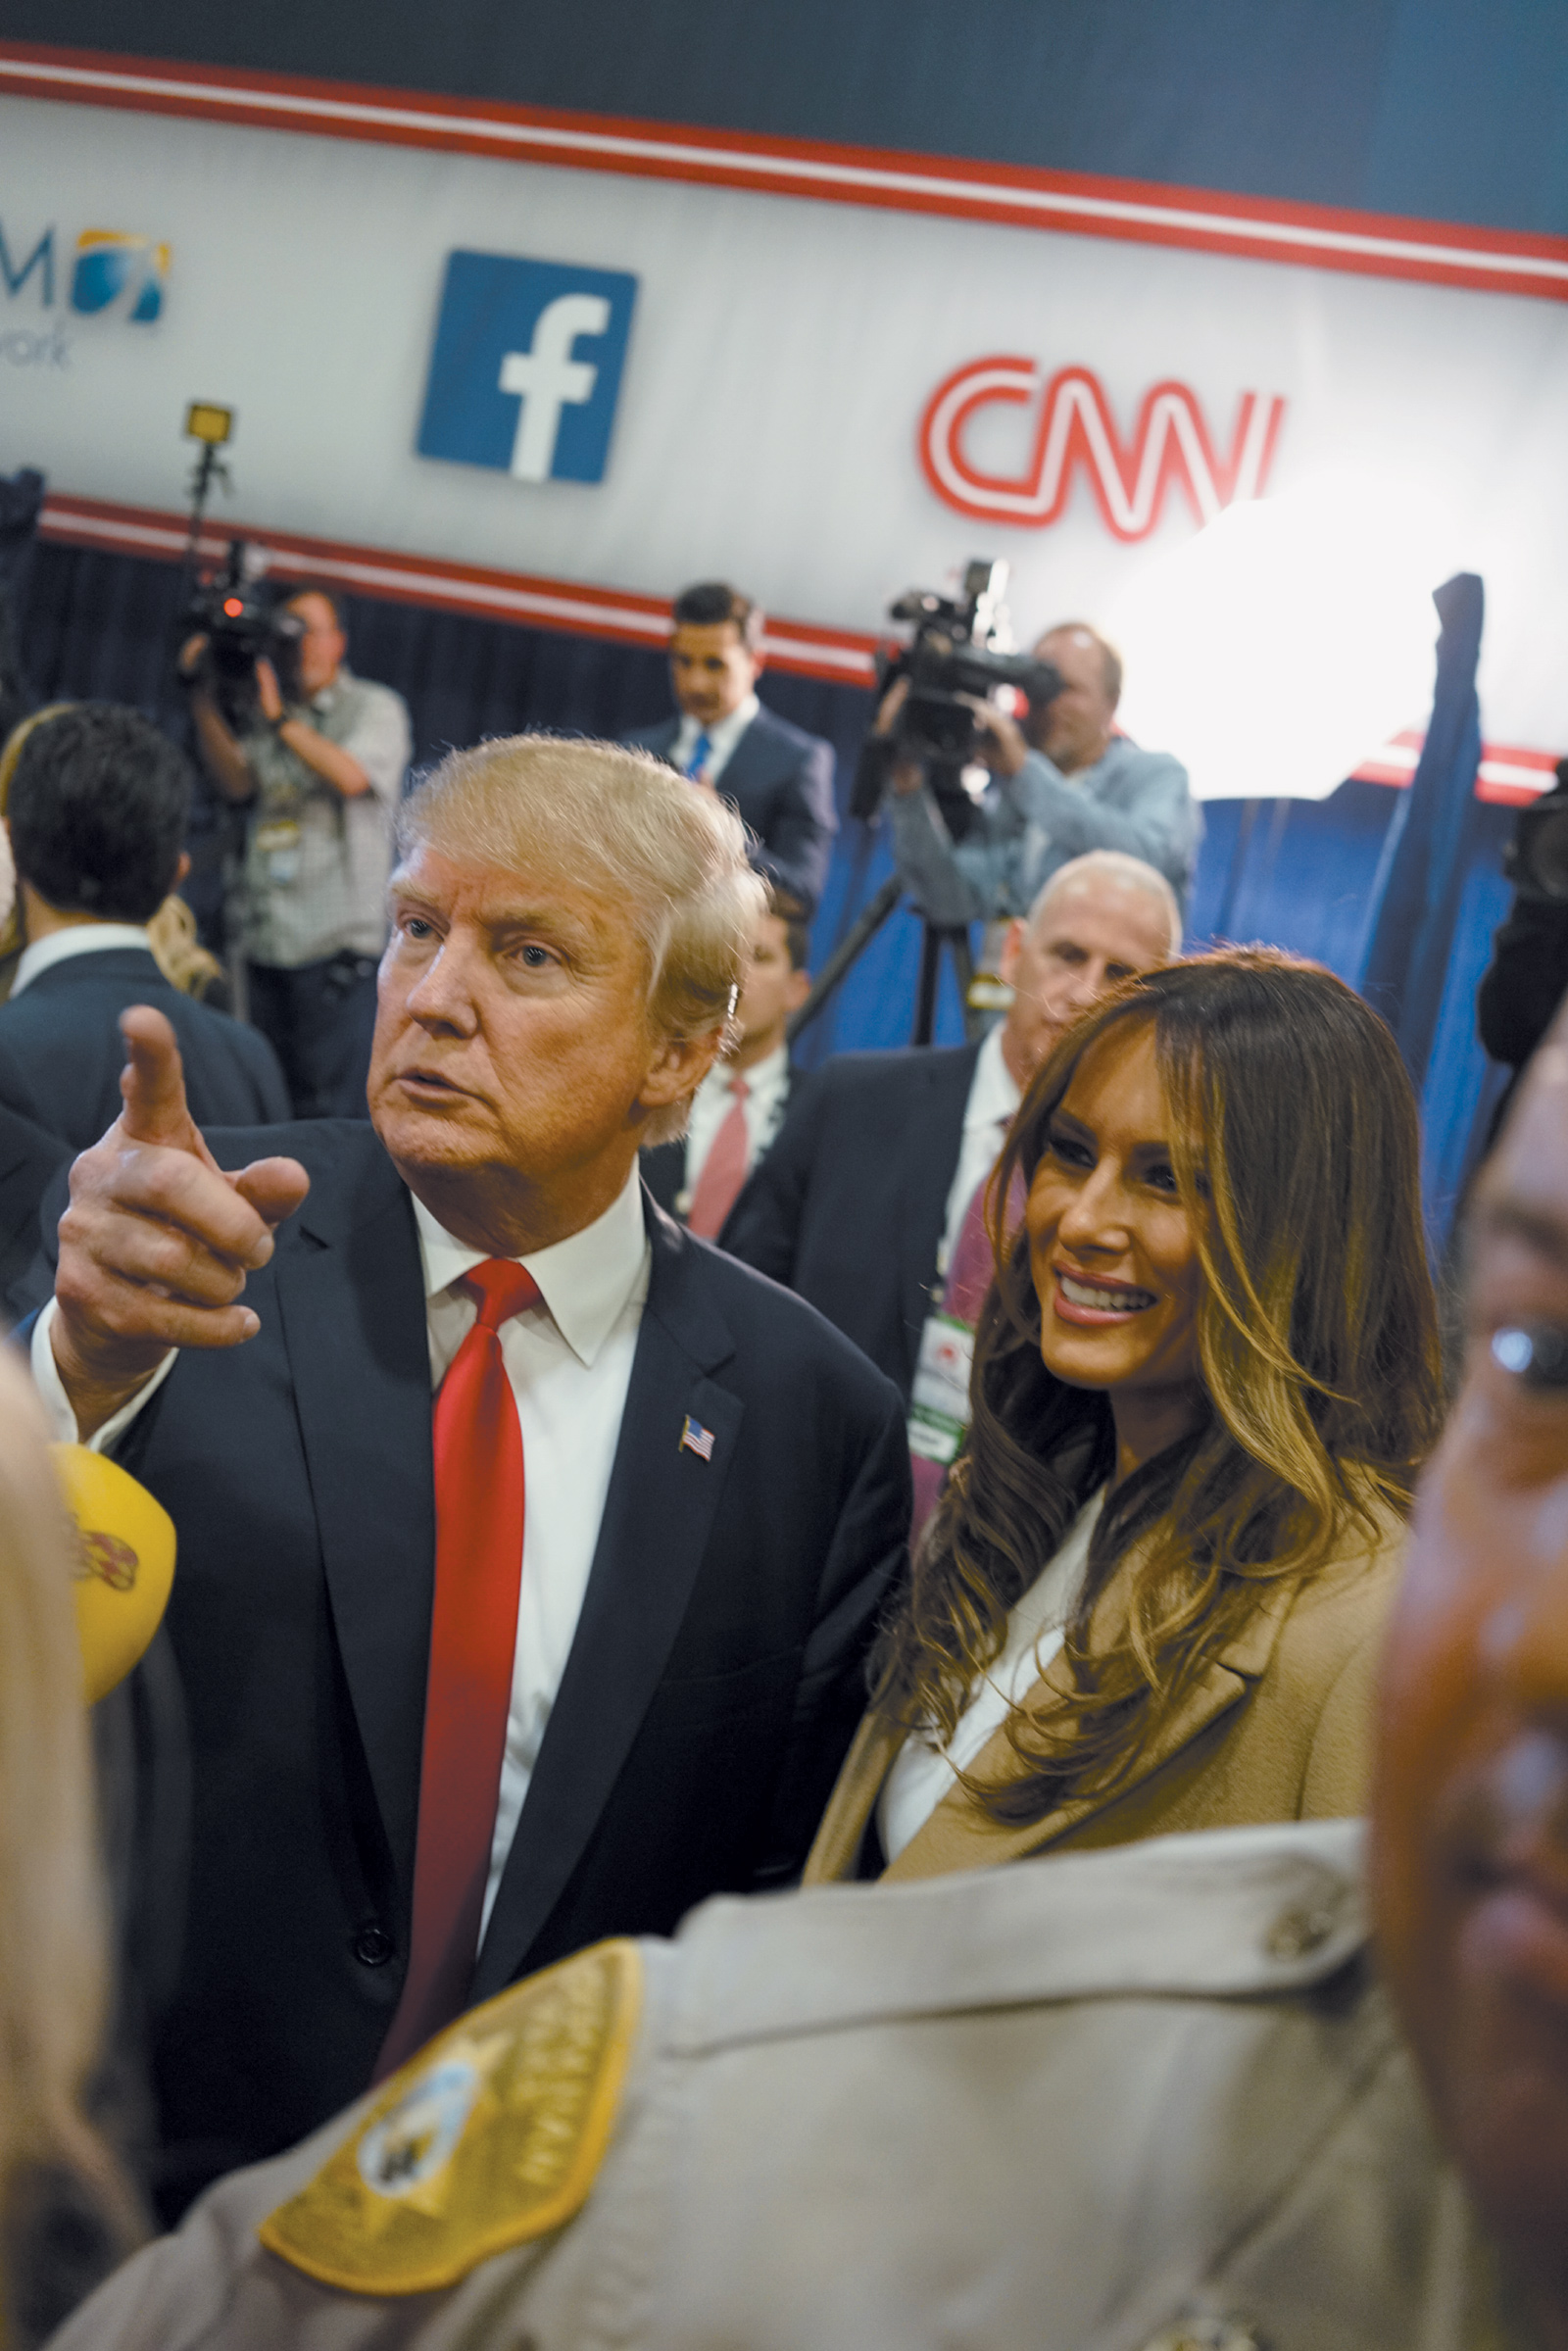 Donald and Melania Trump with reporters in the spin room after the Republican presidential debate in Las Vegas, December 2015